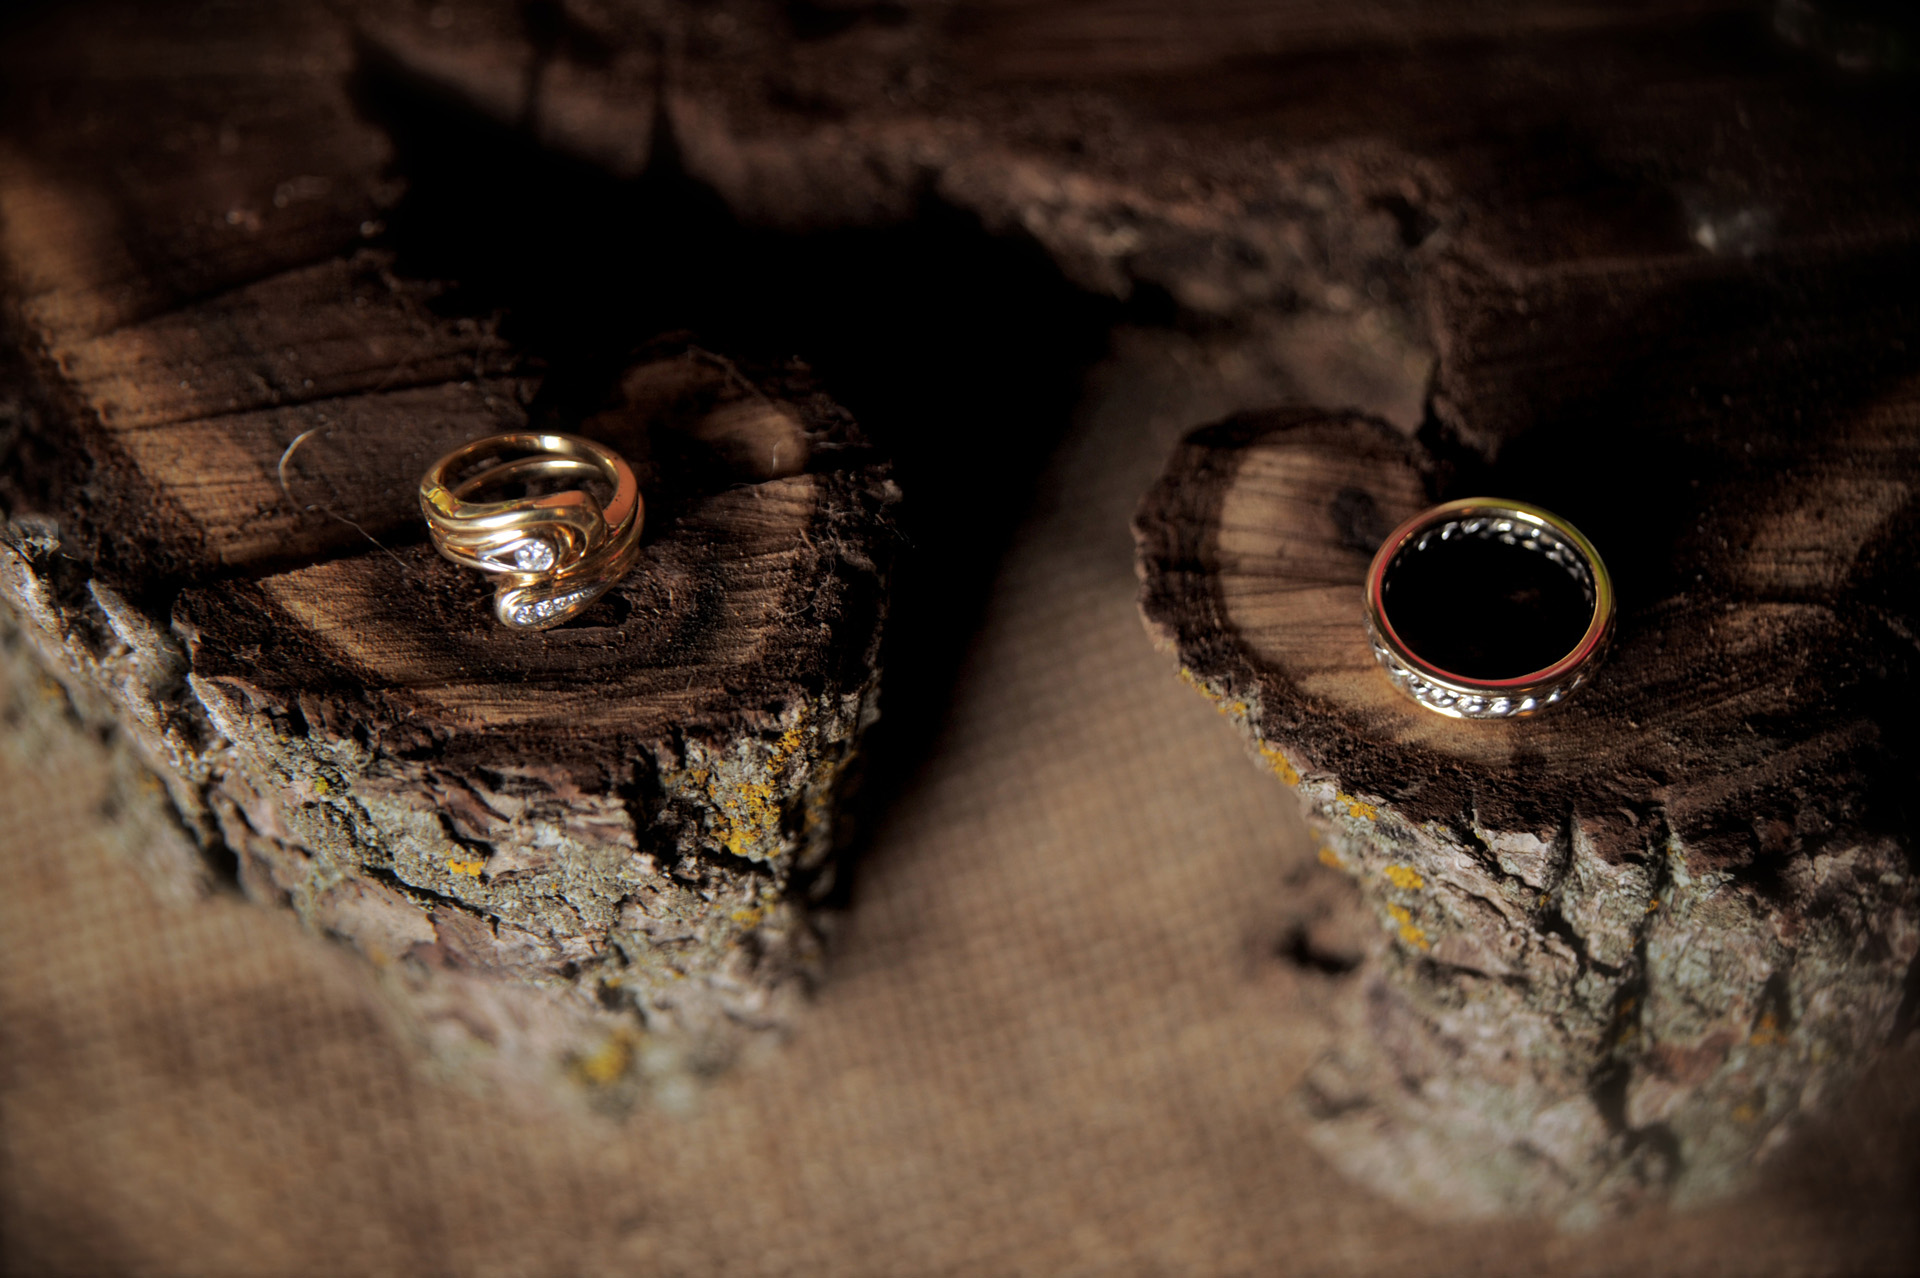 Michigan country wedding wedding photographer's photo of the wedding couple's rings on rings of wood cut at their farm at their Michigan country wedding.